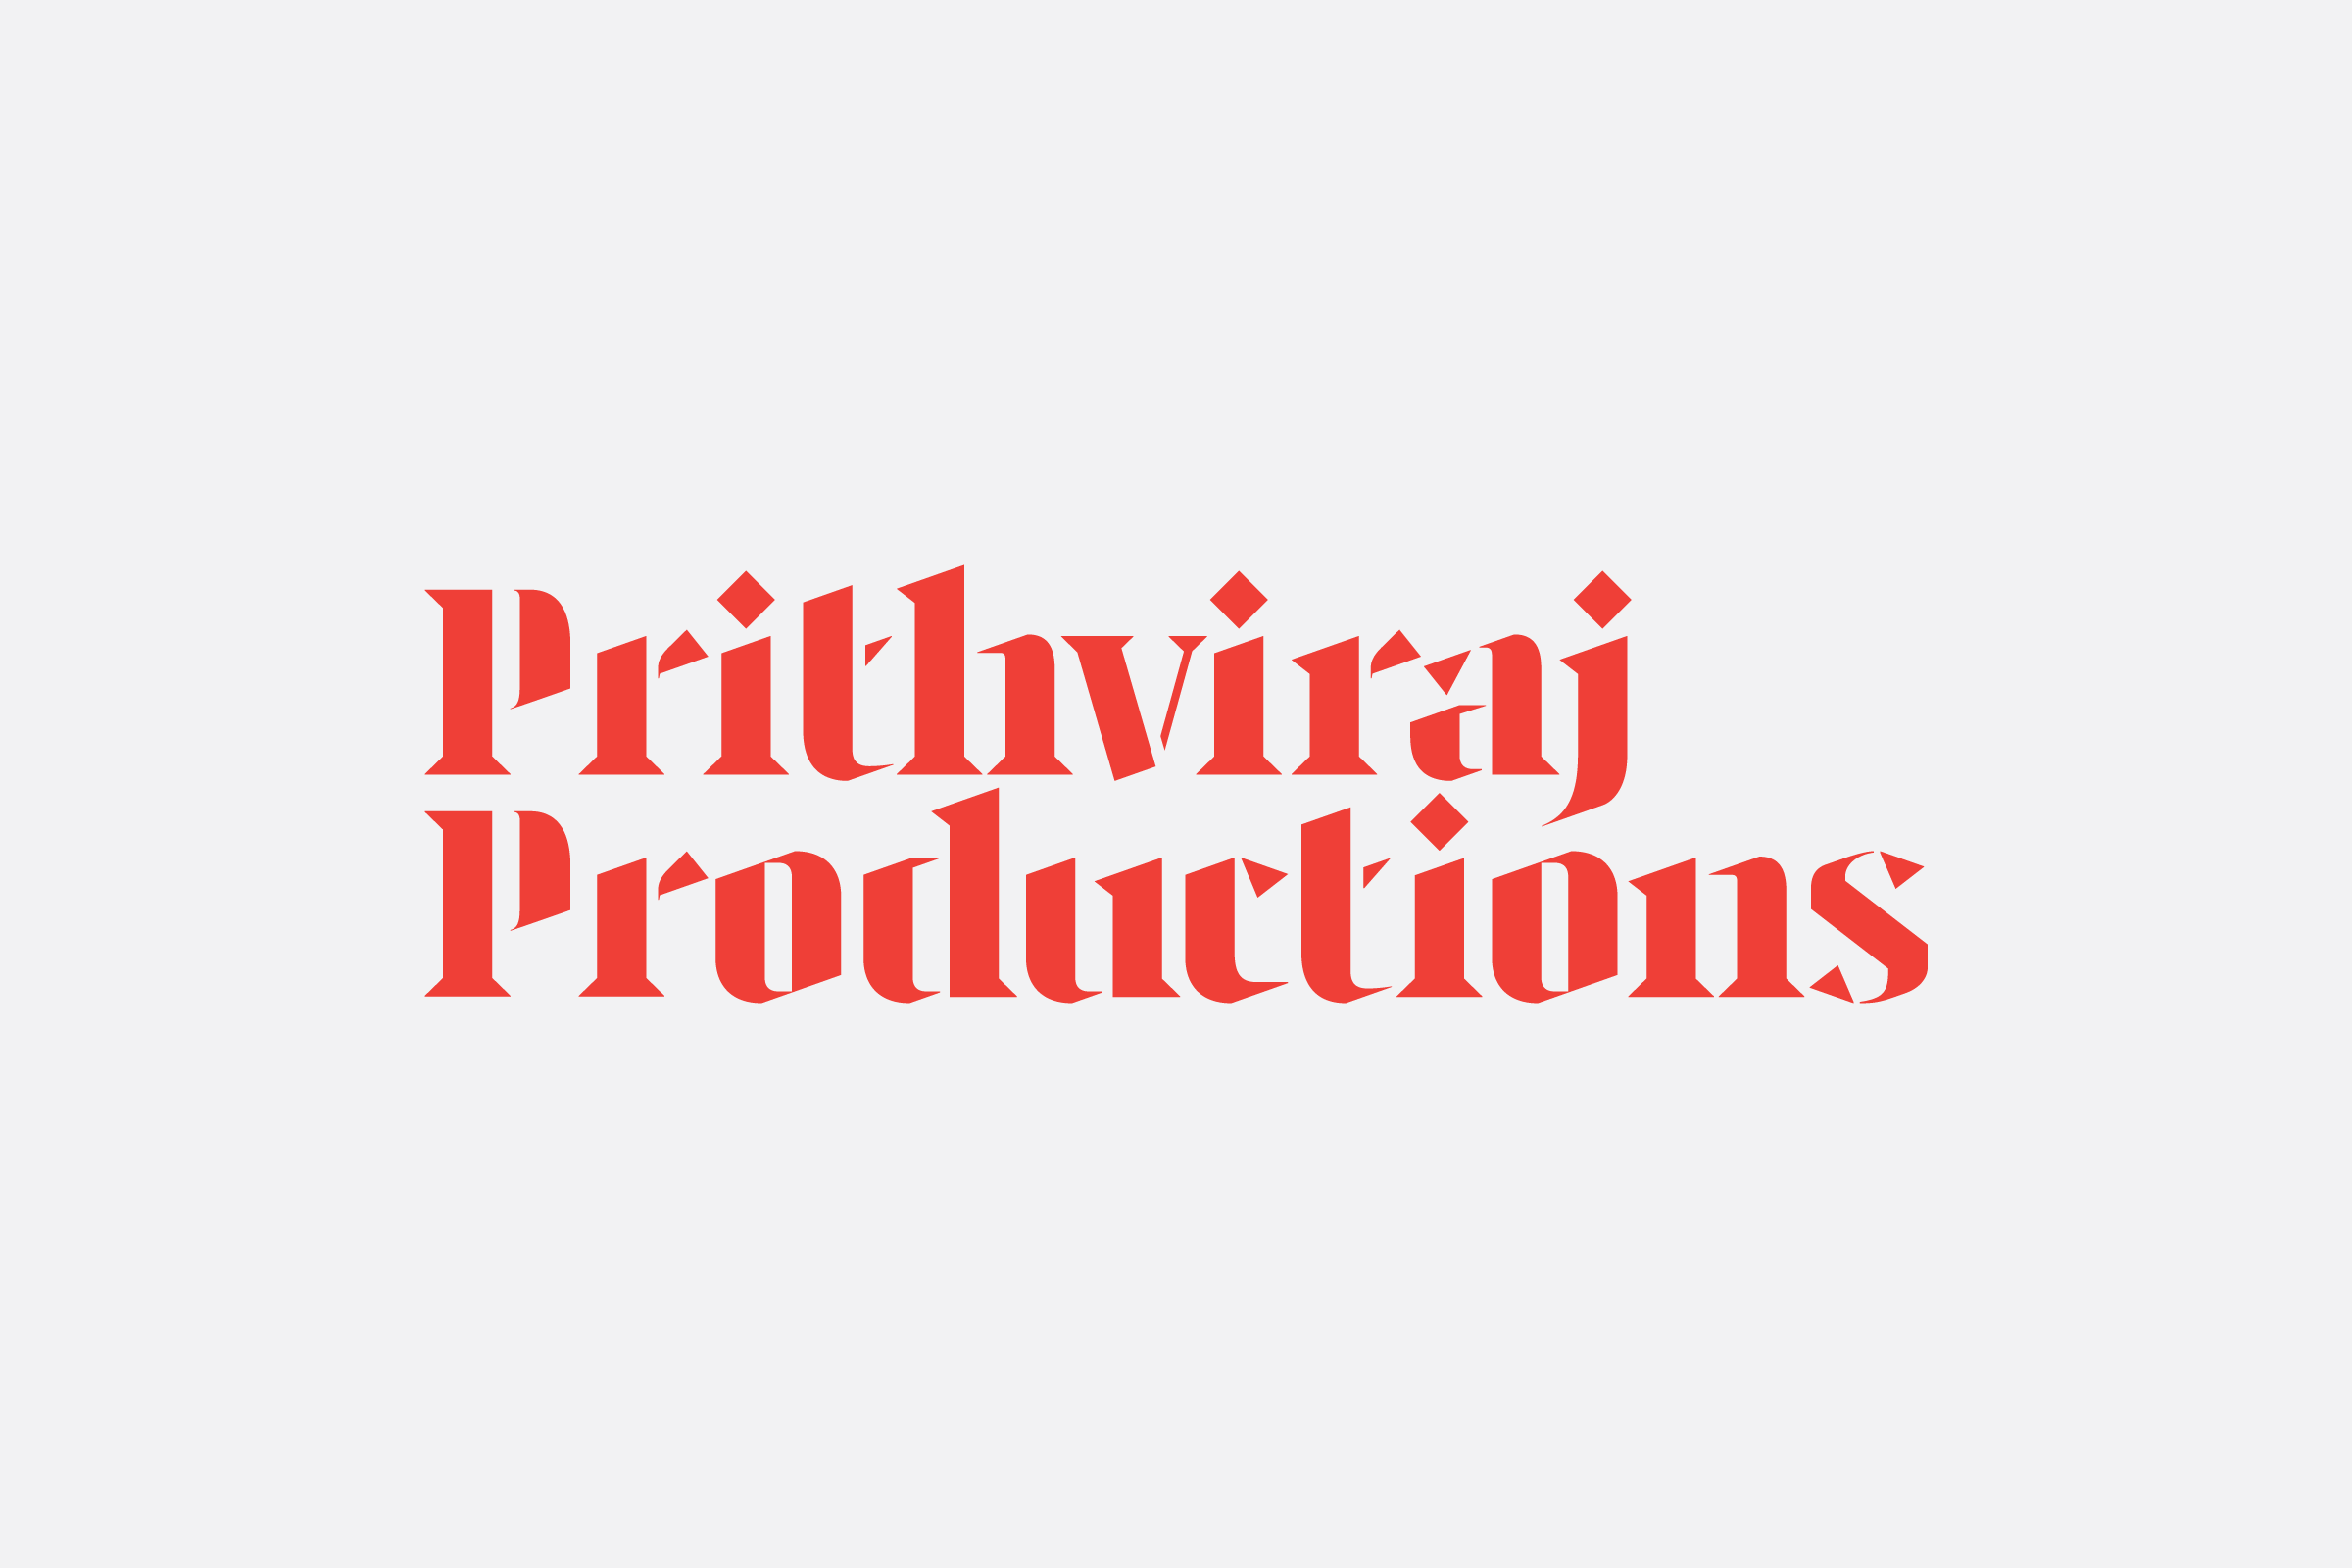 Prithviraj Productions